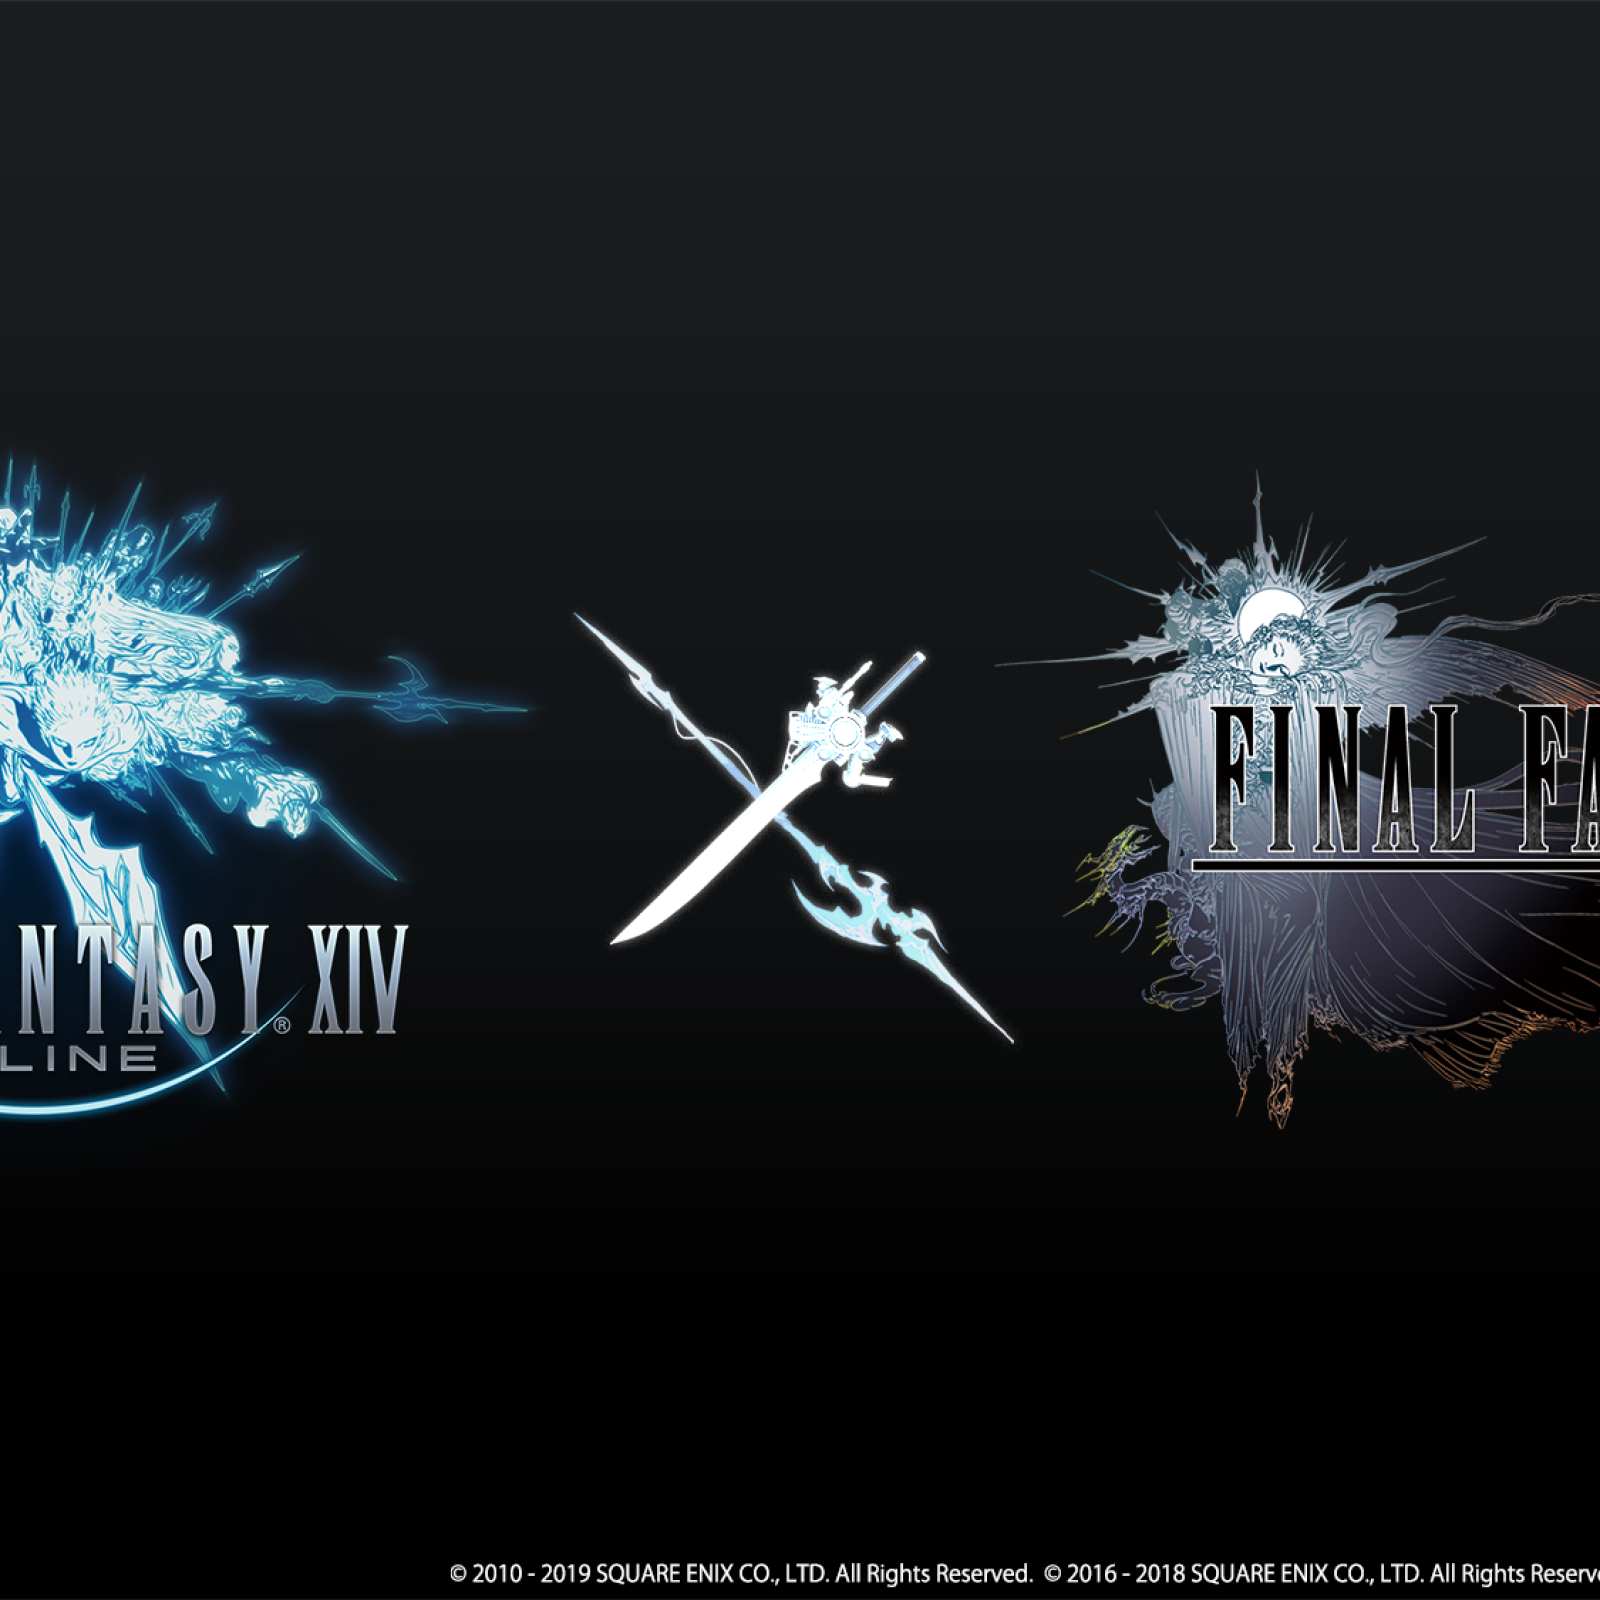 Final Fantasy XIV' and 'XV' Collaboration Coming in April